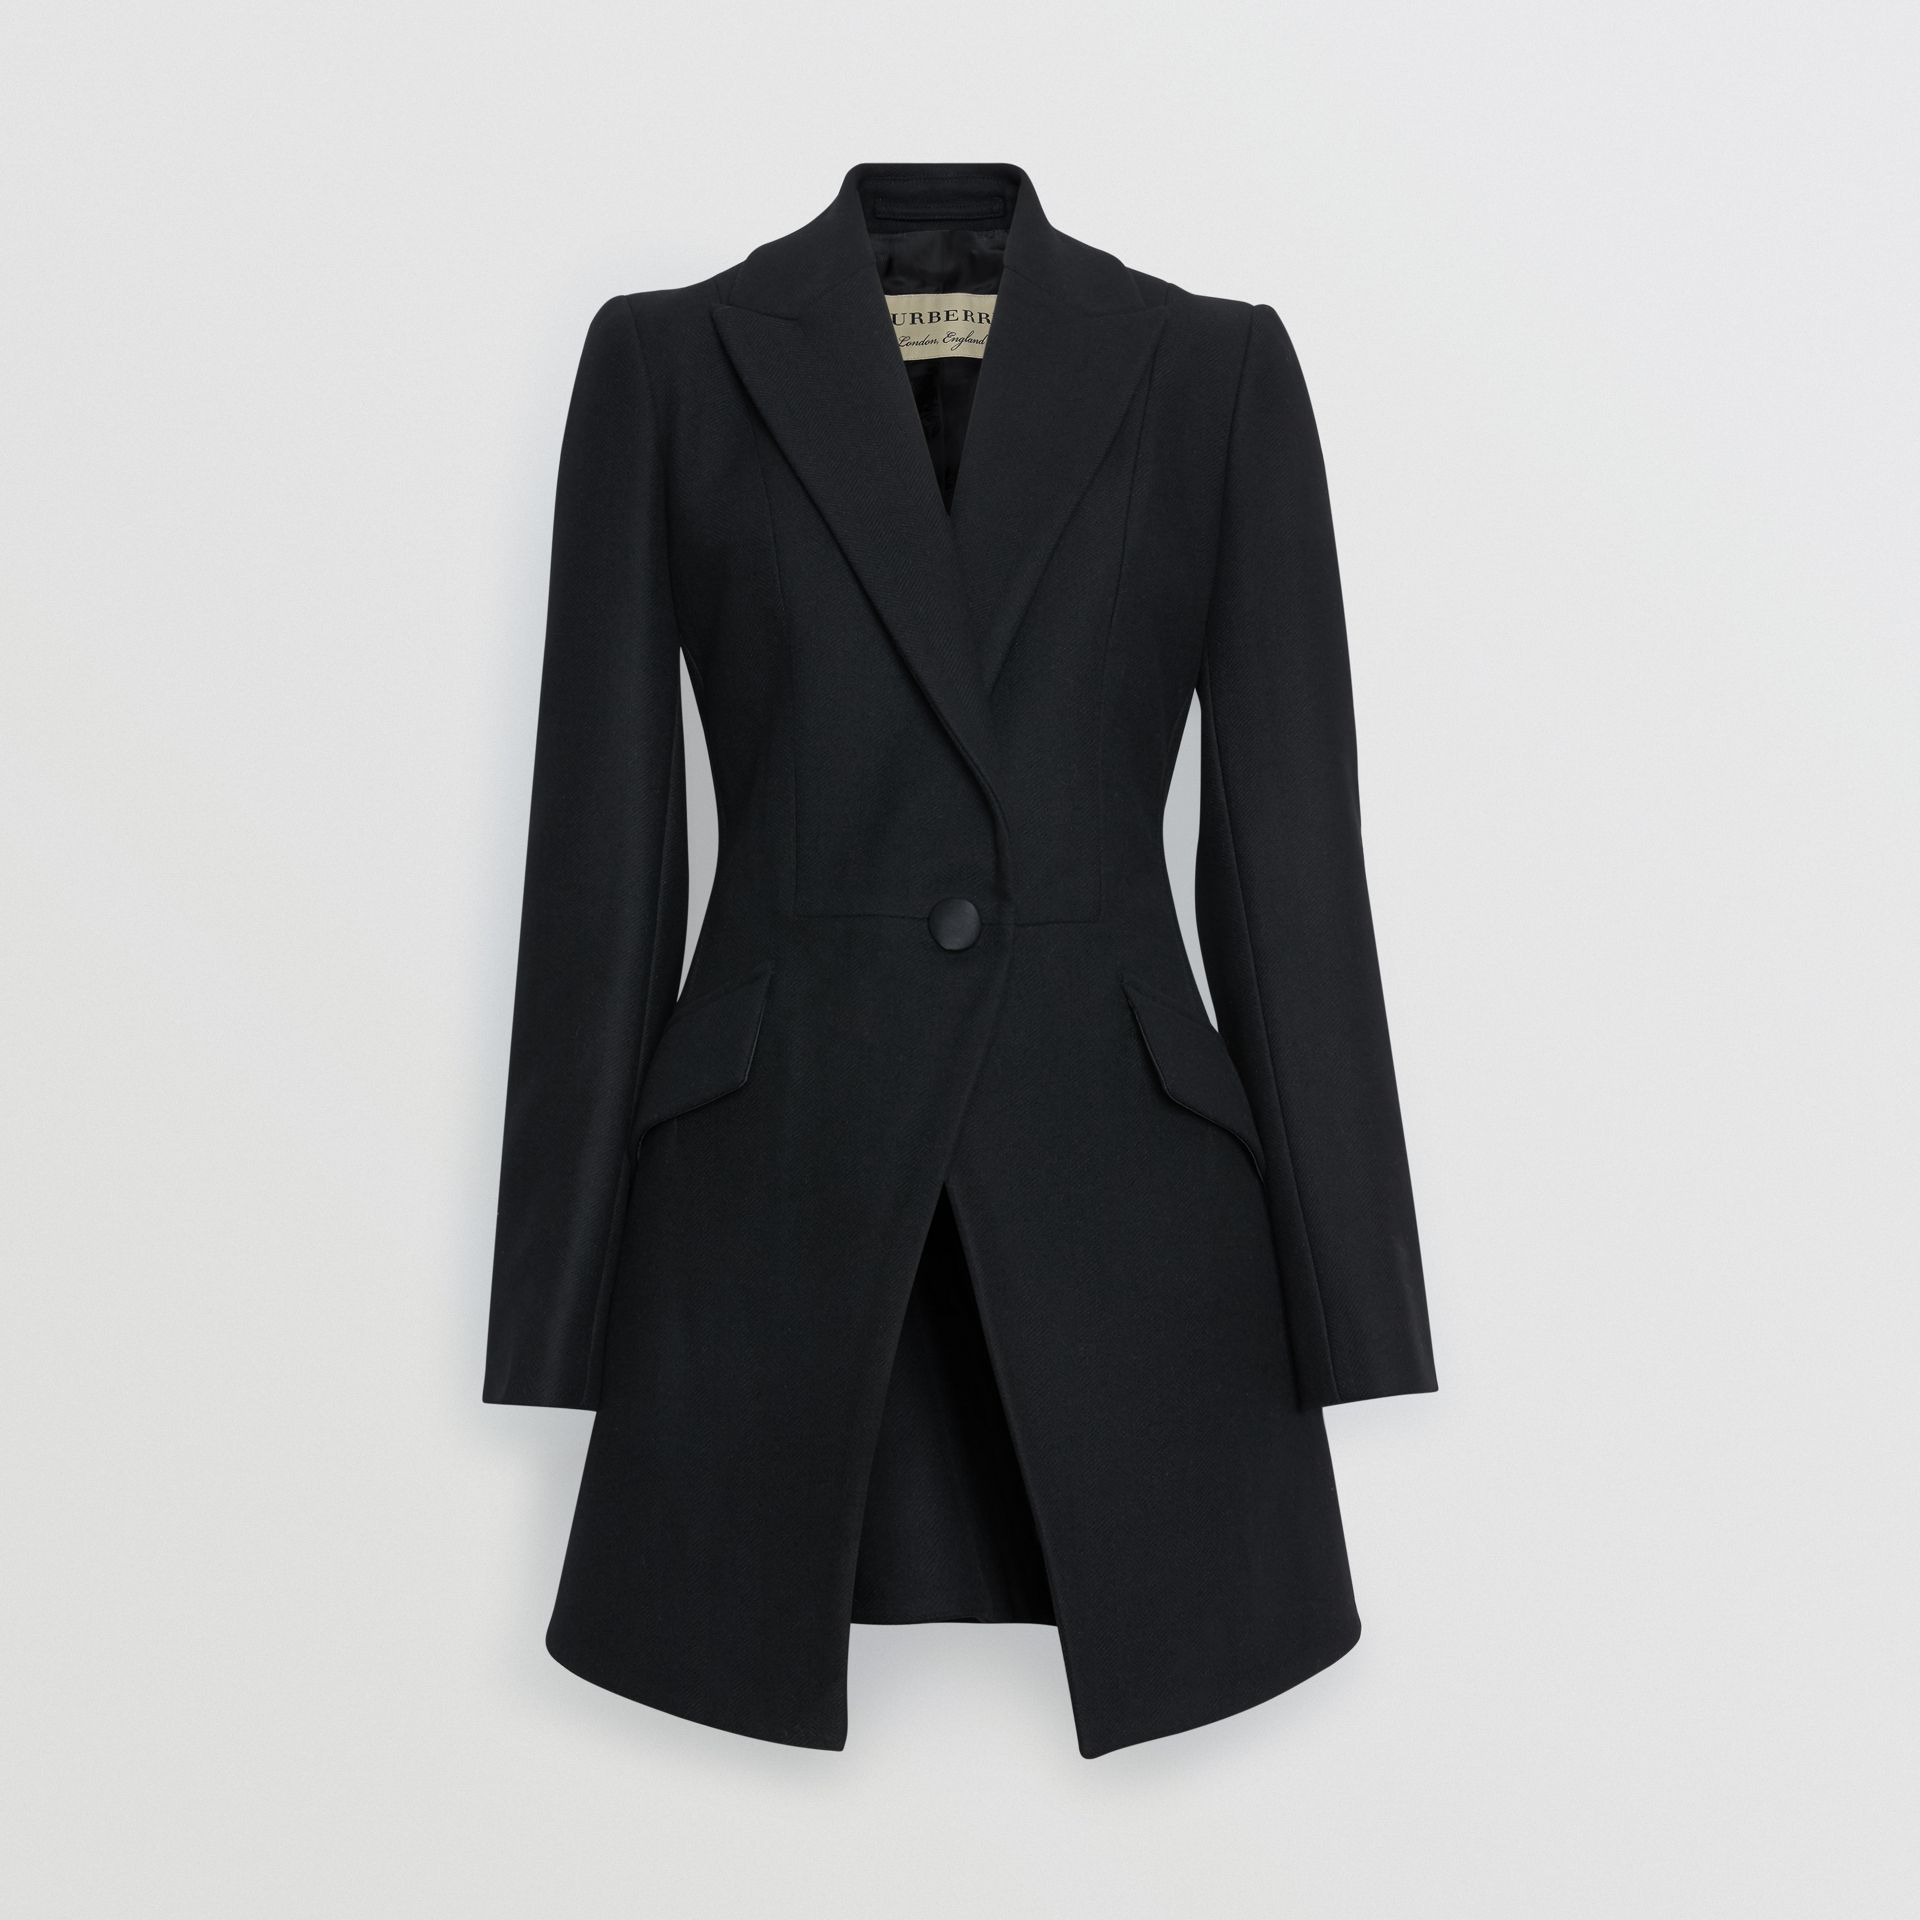 Herringbone Wool Cashmere Blend Tailored Jacket in Black - Women | Burberry United States - gallery image 3